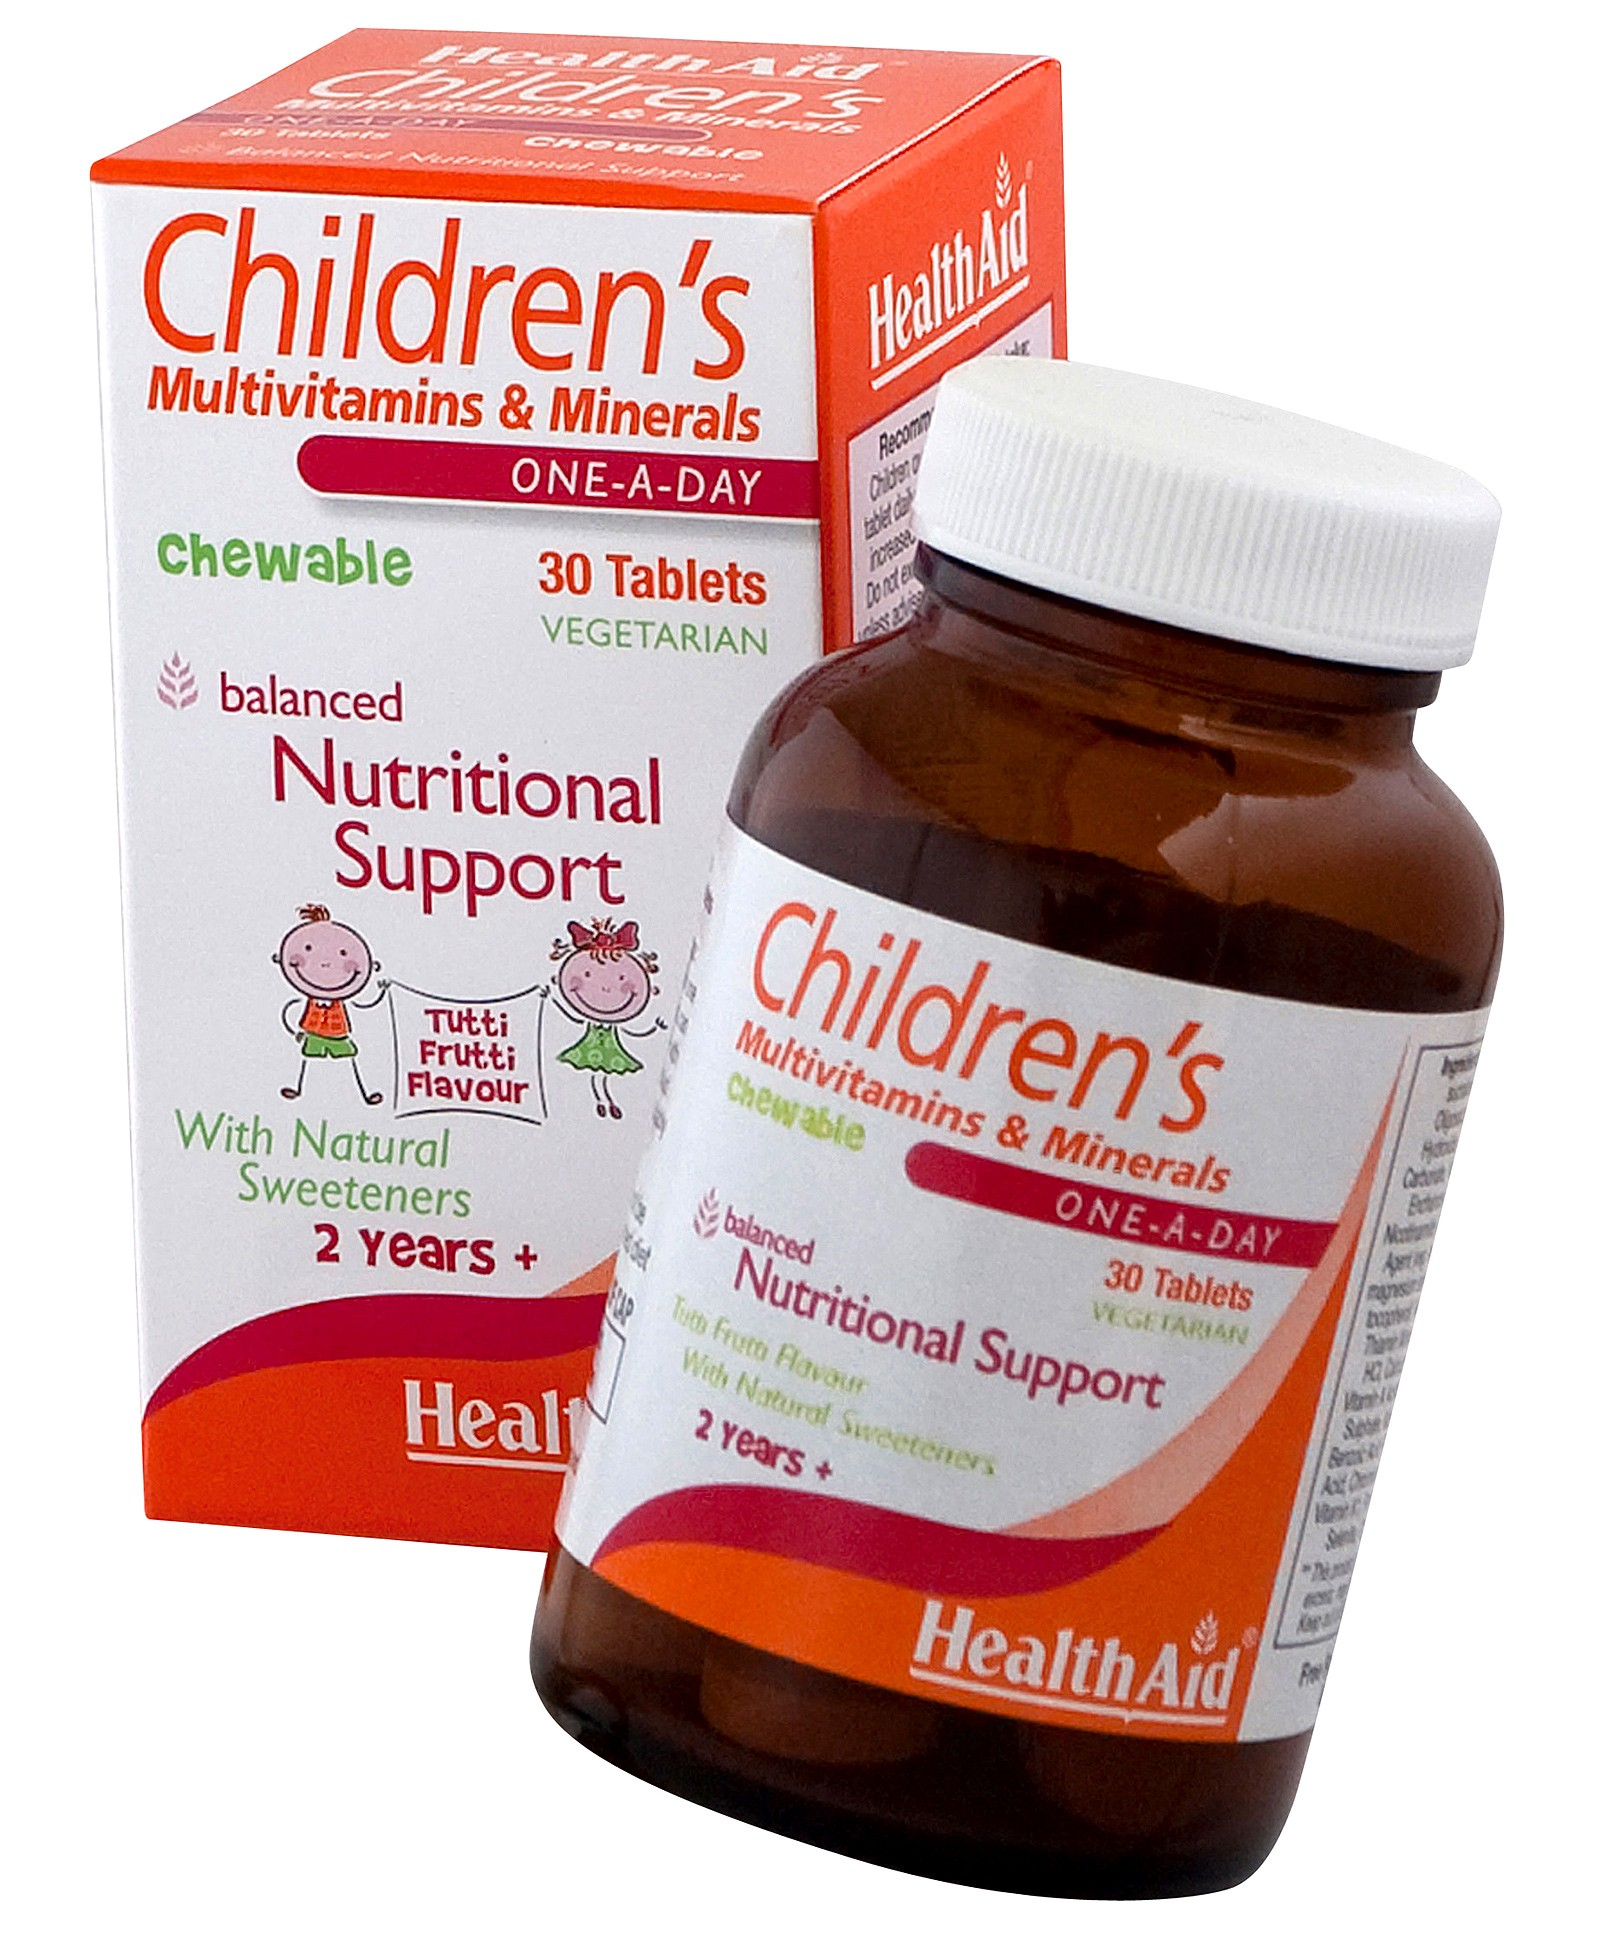 Health Aid Children's MultiVitamins & Minerals